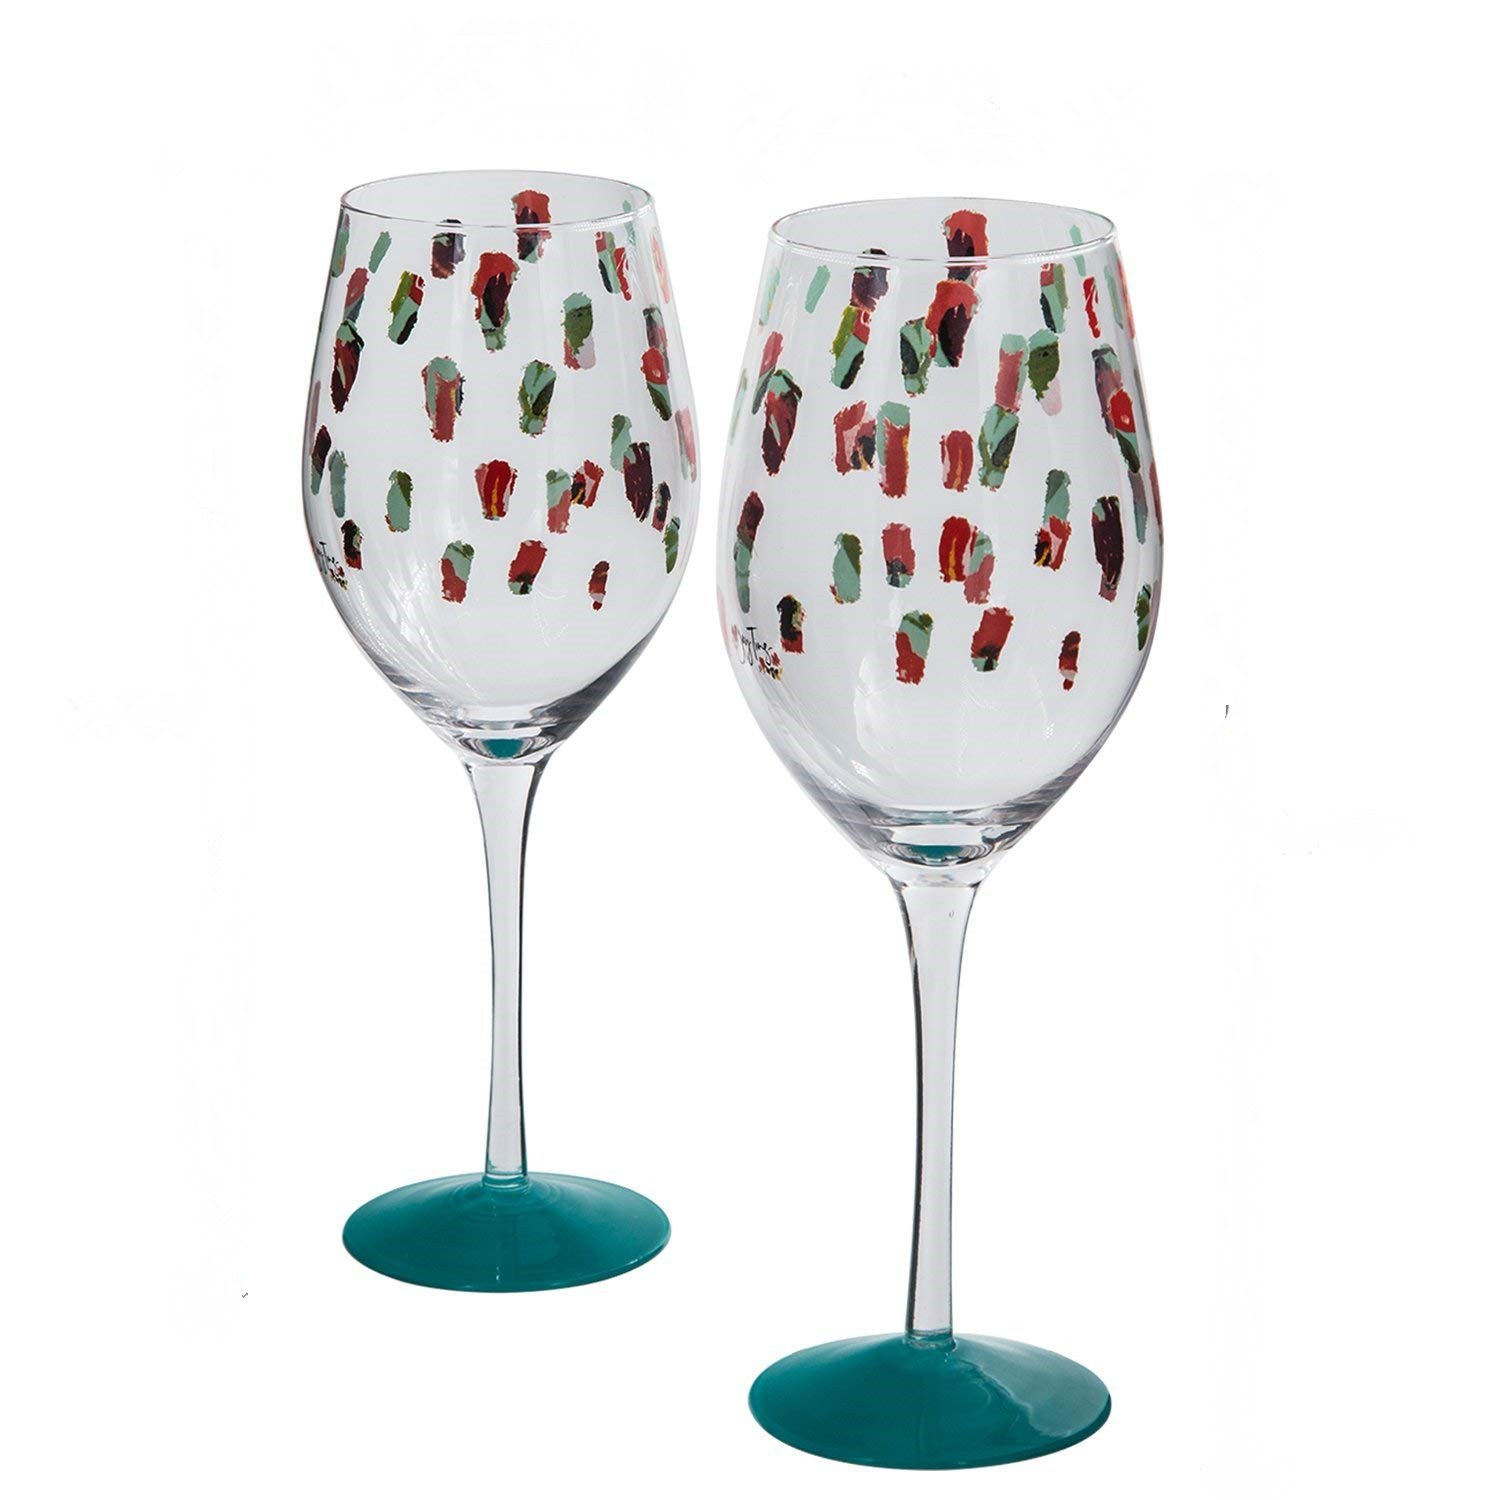 CEDAR HOME Wine Glass w/Silicone Base Hand Painted Lead Free Unique Stemmed Toasting Claret Cup, 12oz, Boho Floral Party, Teal